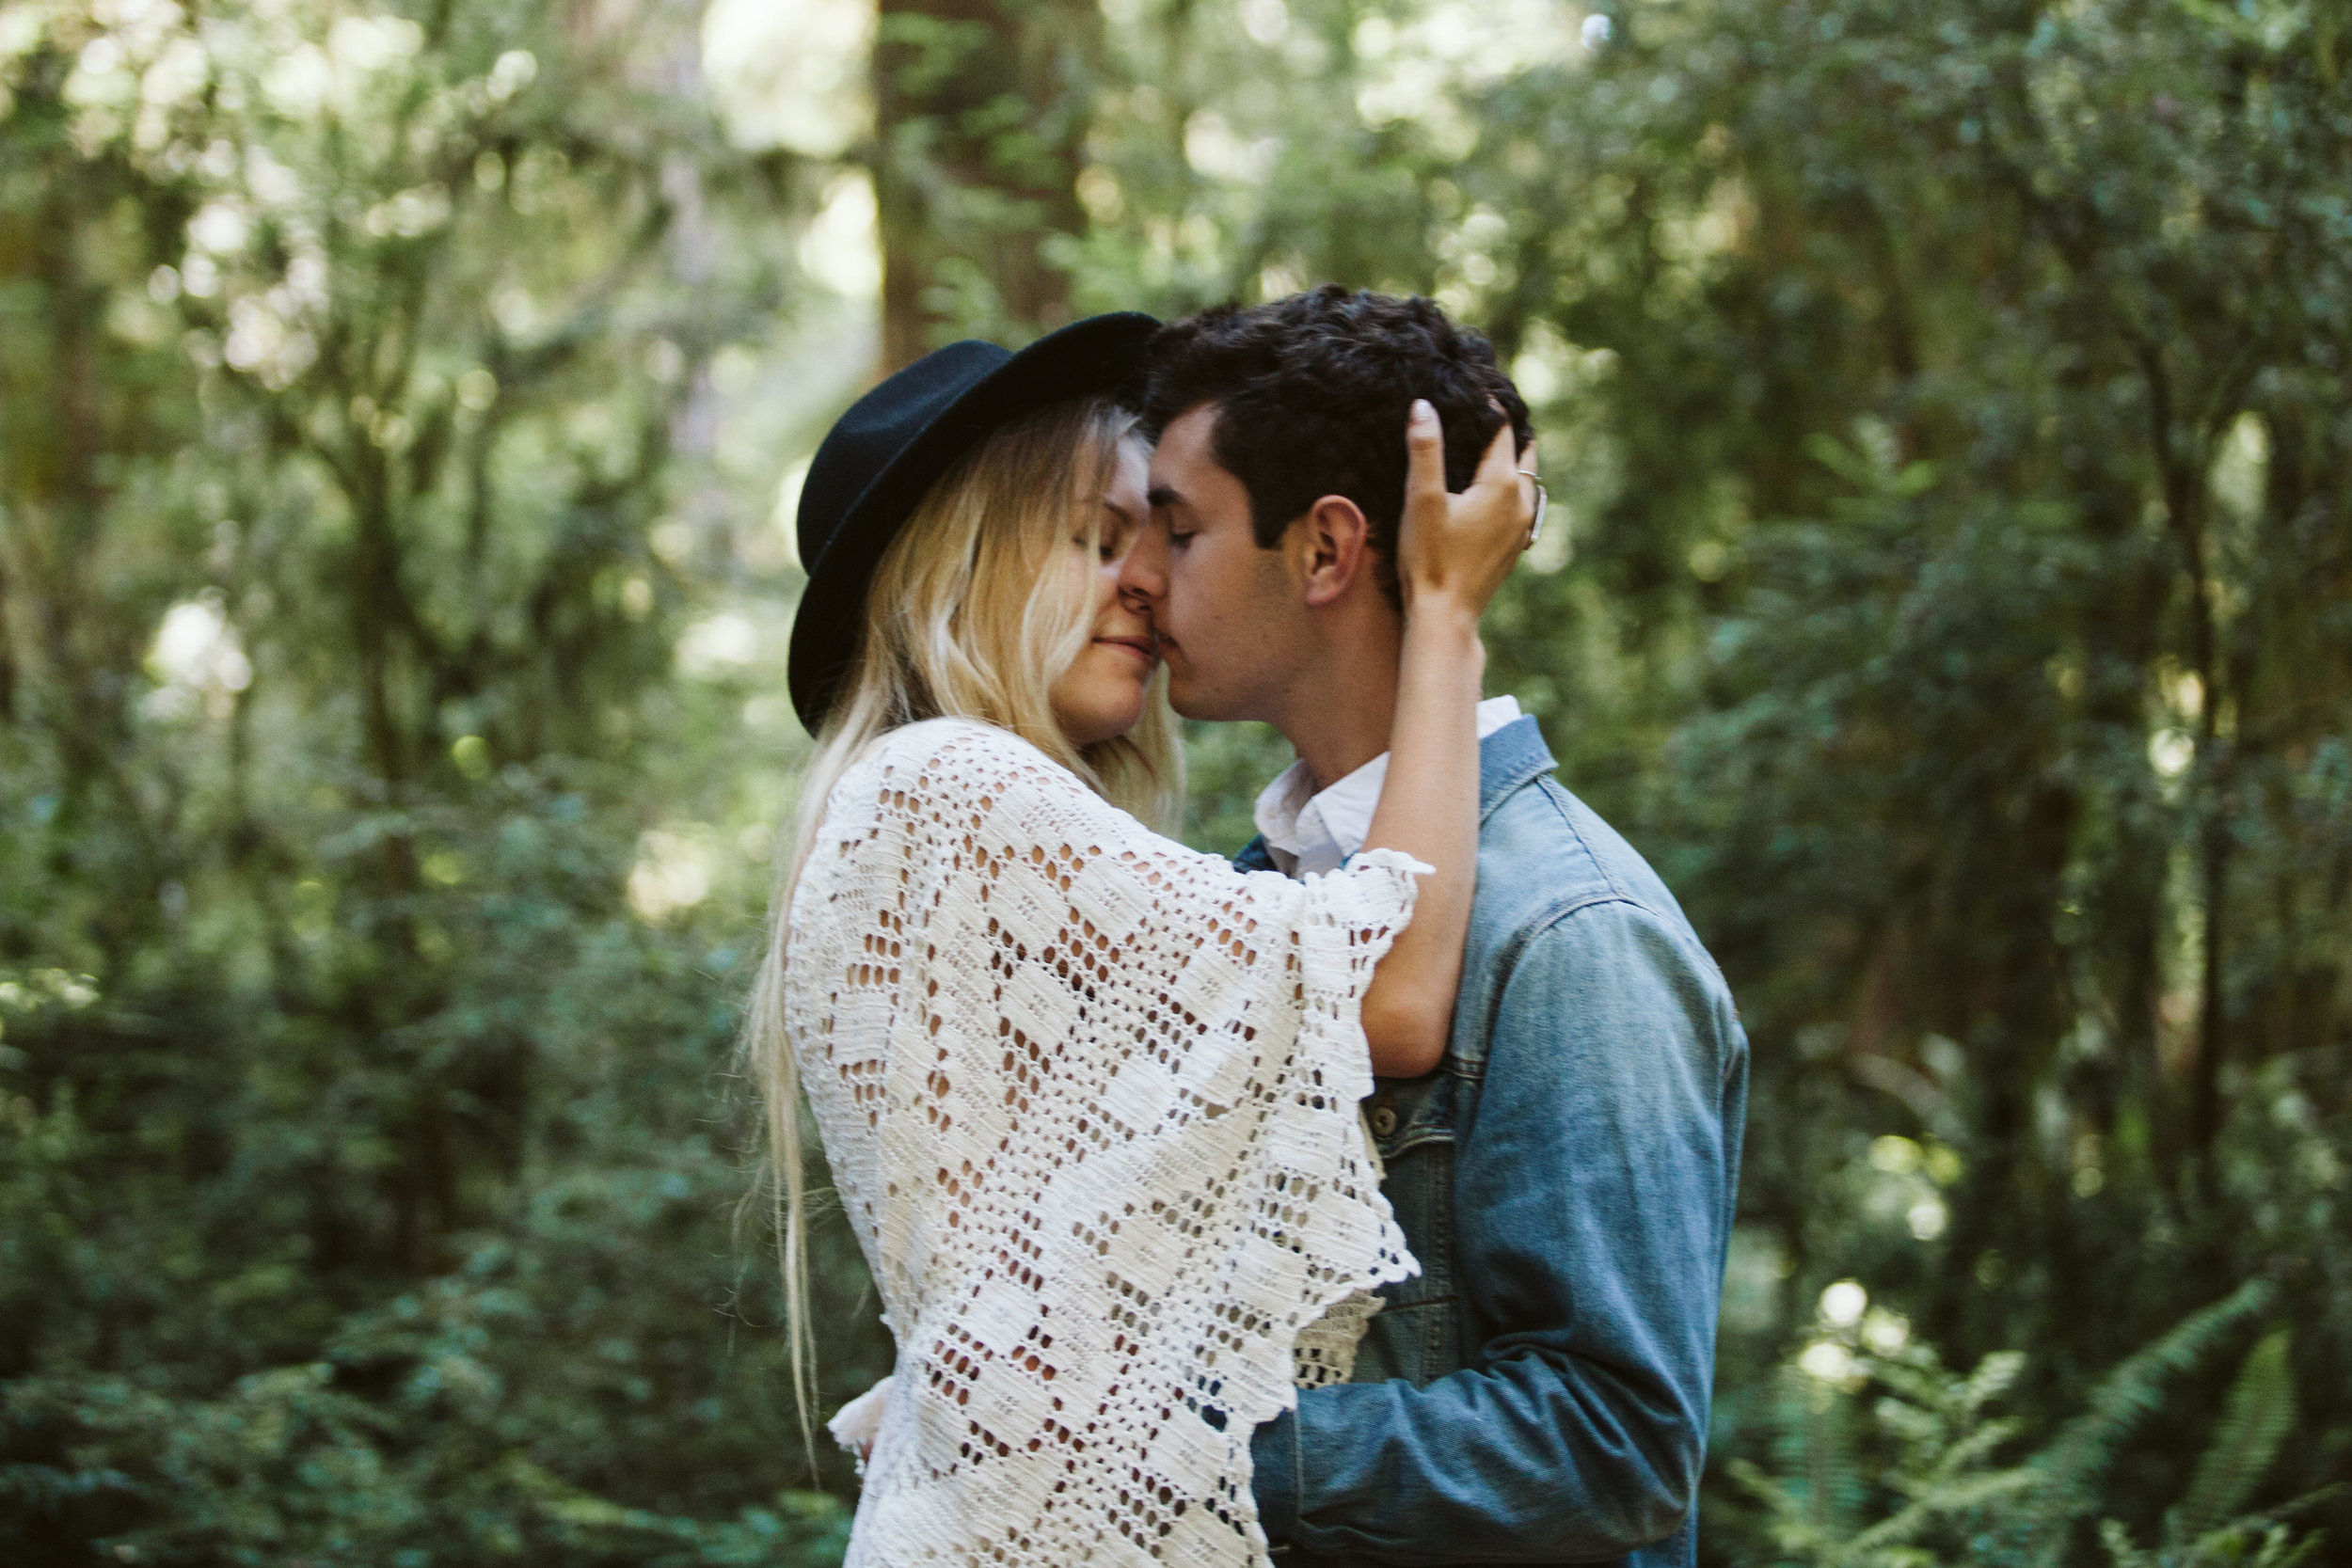 Redwoods_Elopement_Engagement_PNW_SouthernOregon_NorthernCalifornia_ (31 of 42).jpg